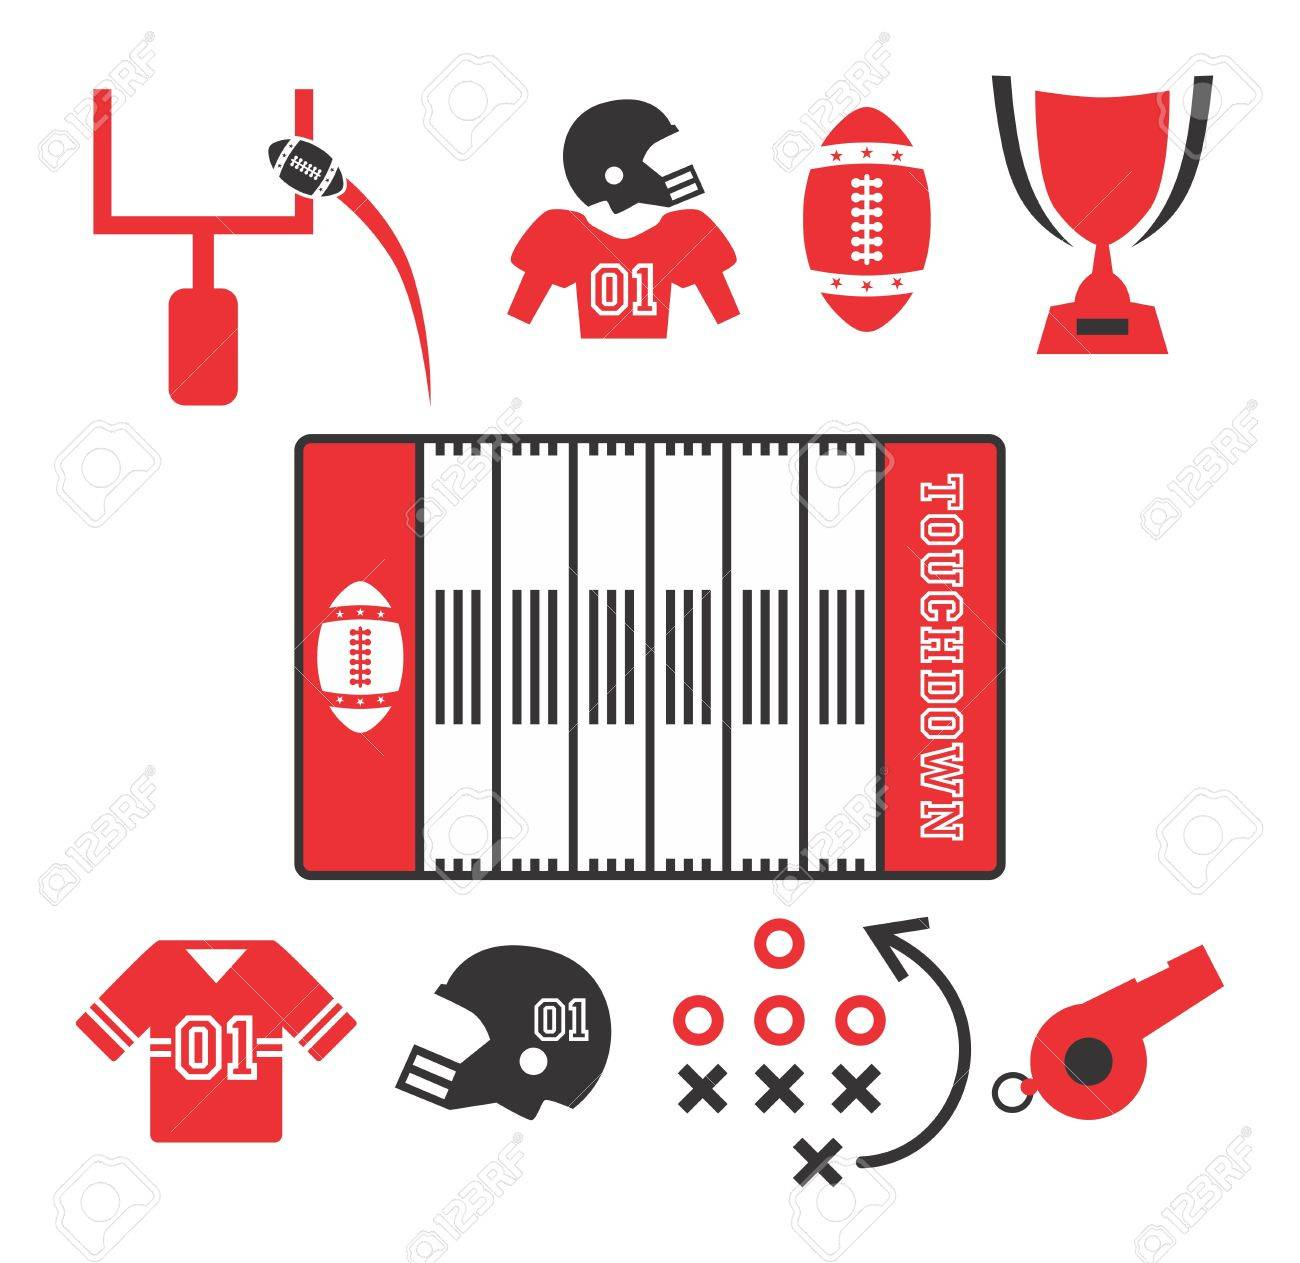 american football icon Stock Vector - 20221769